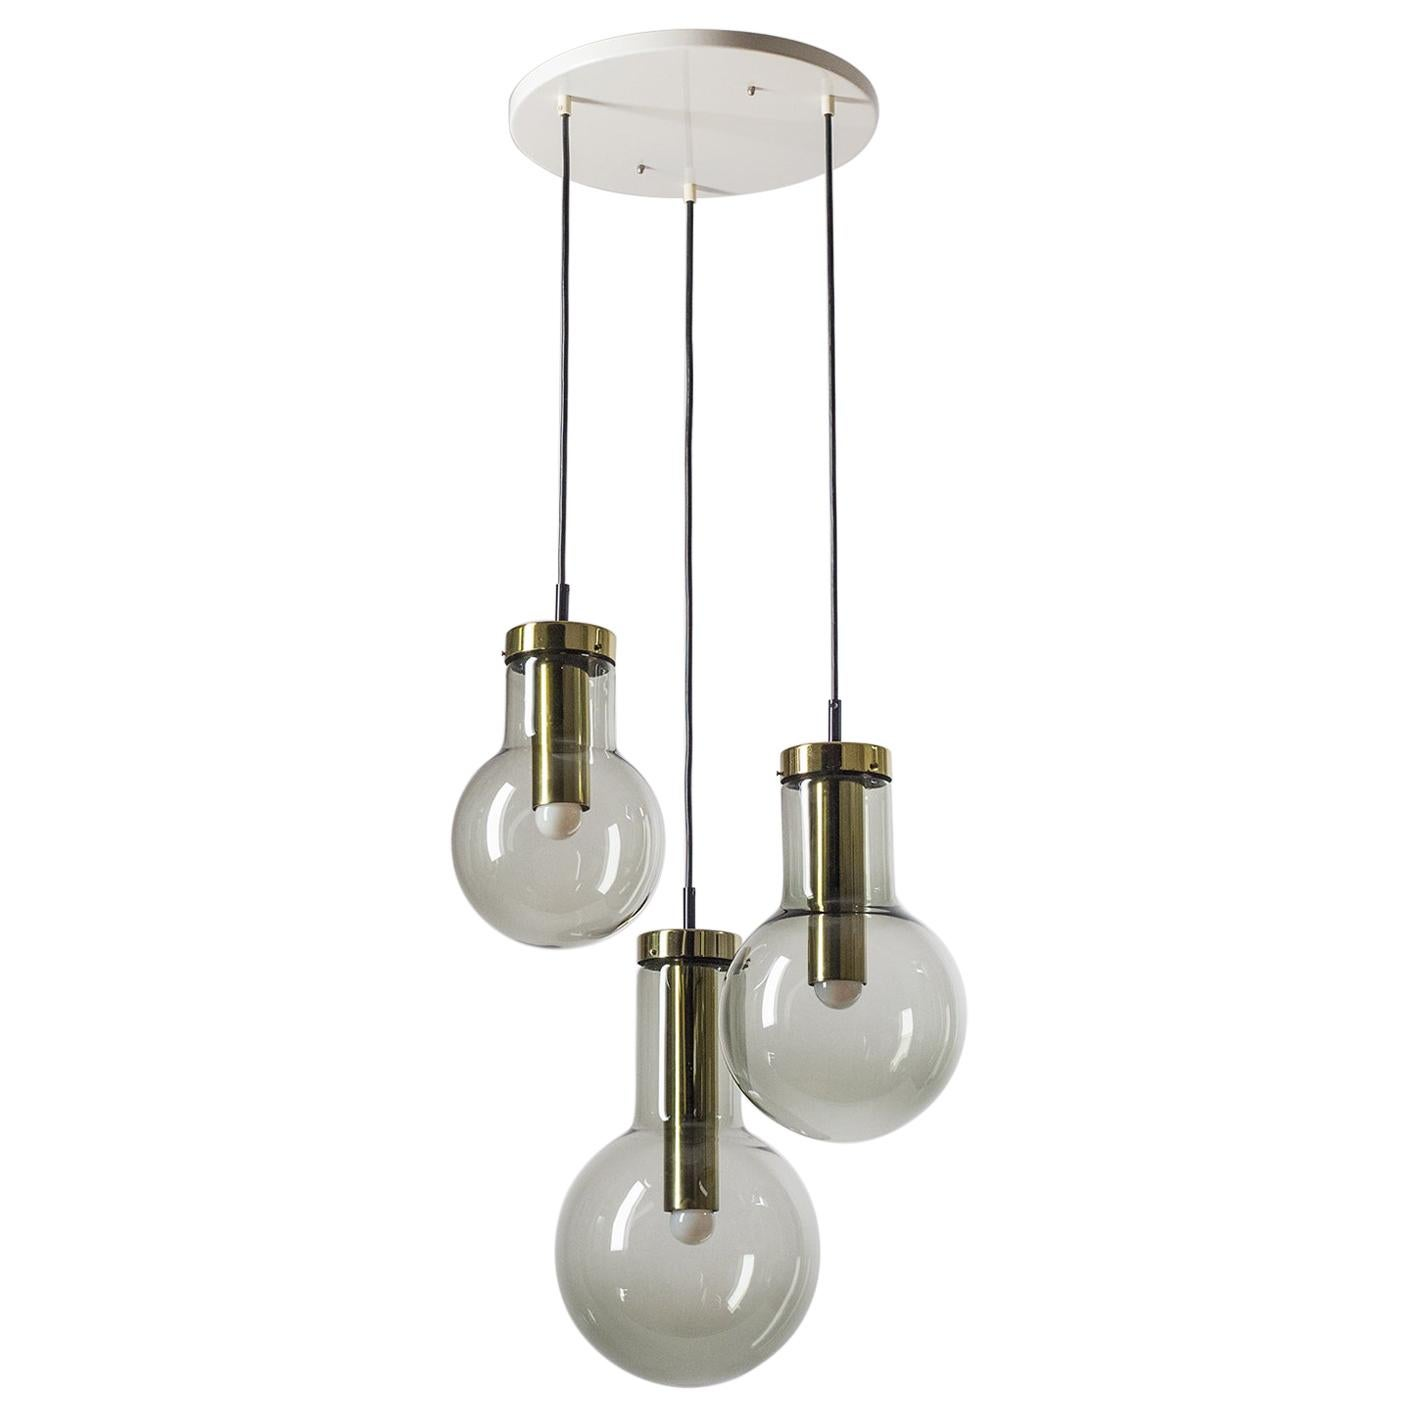 Smoked Glass Chandelier by RAAK, 1970s